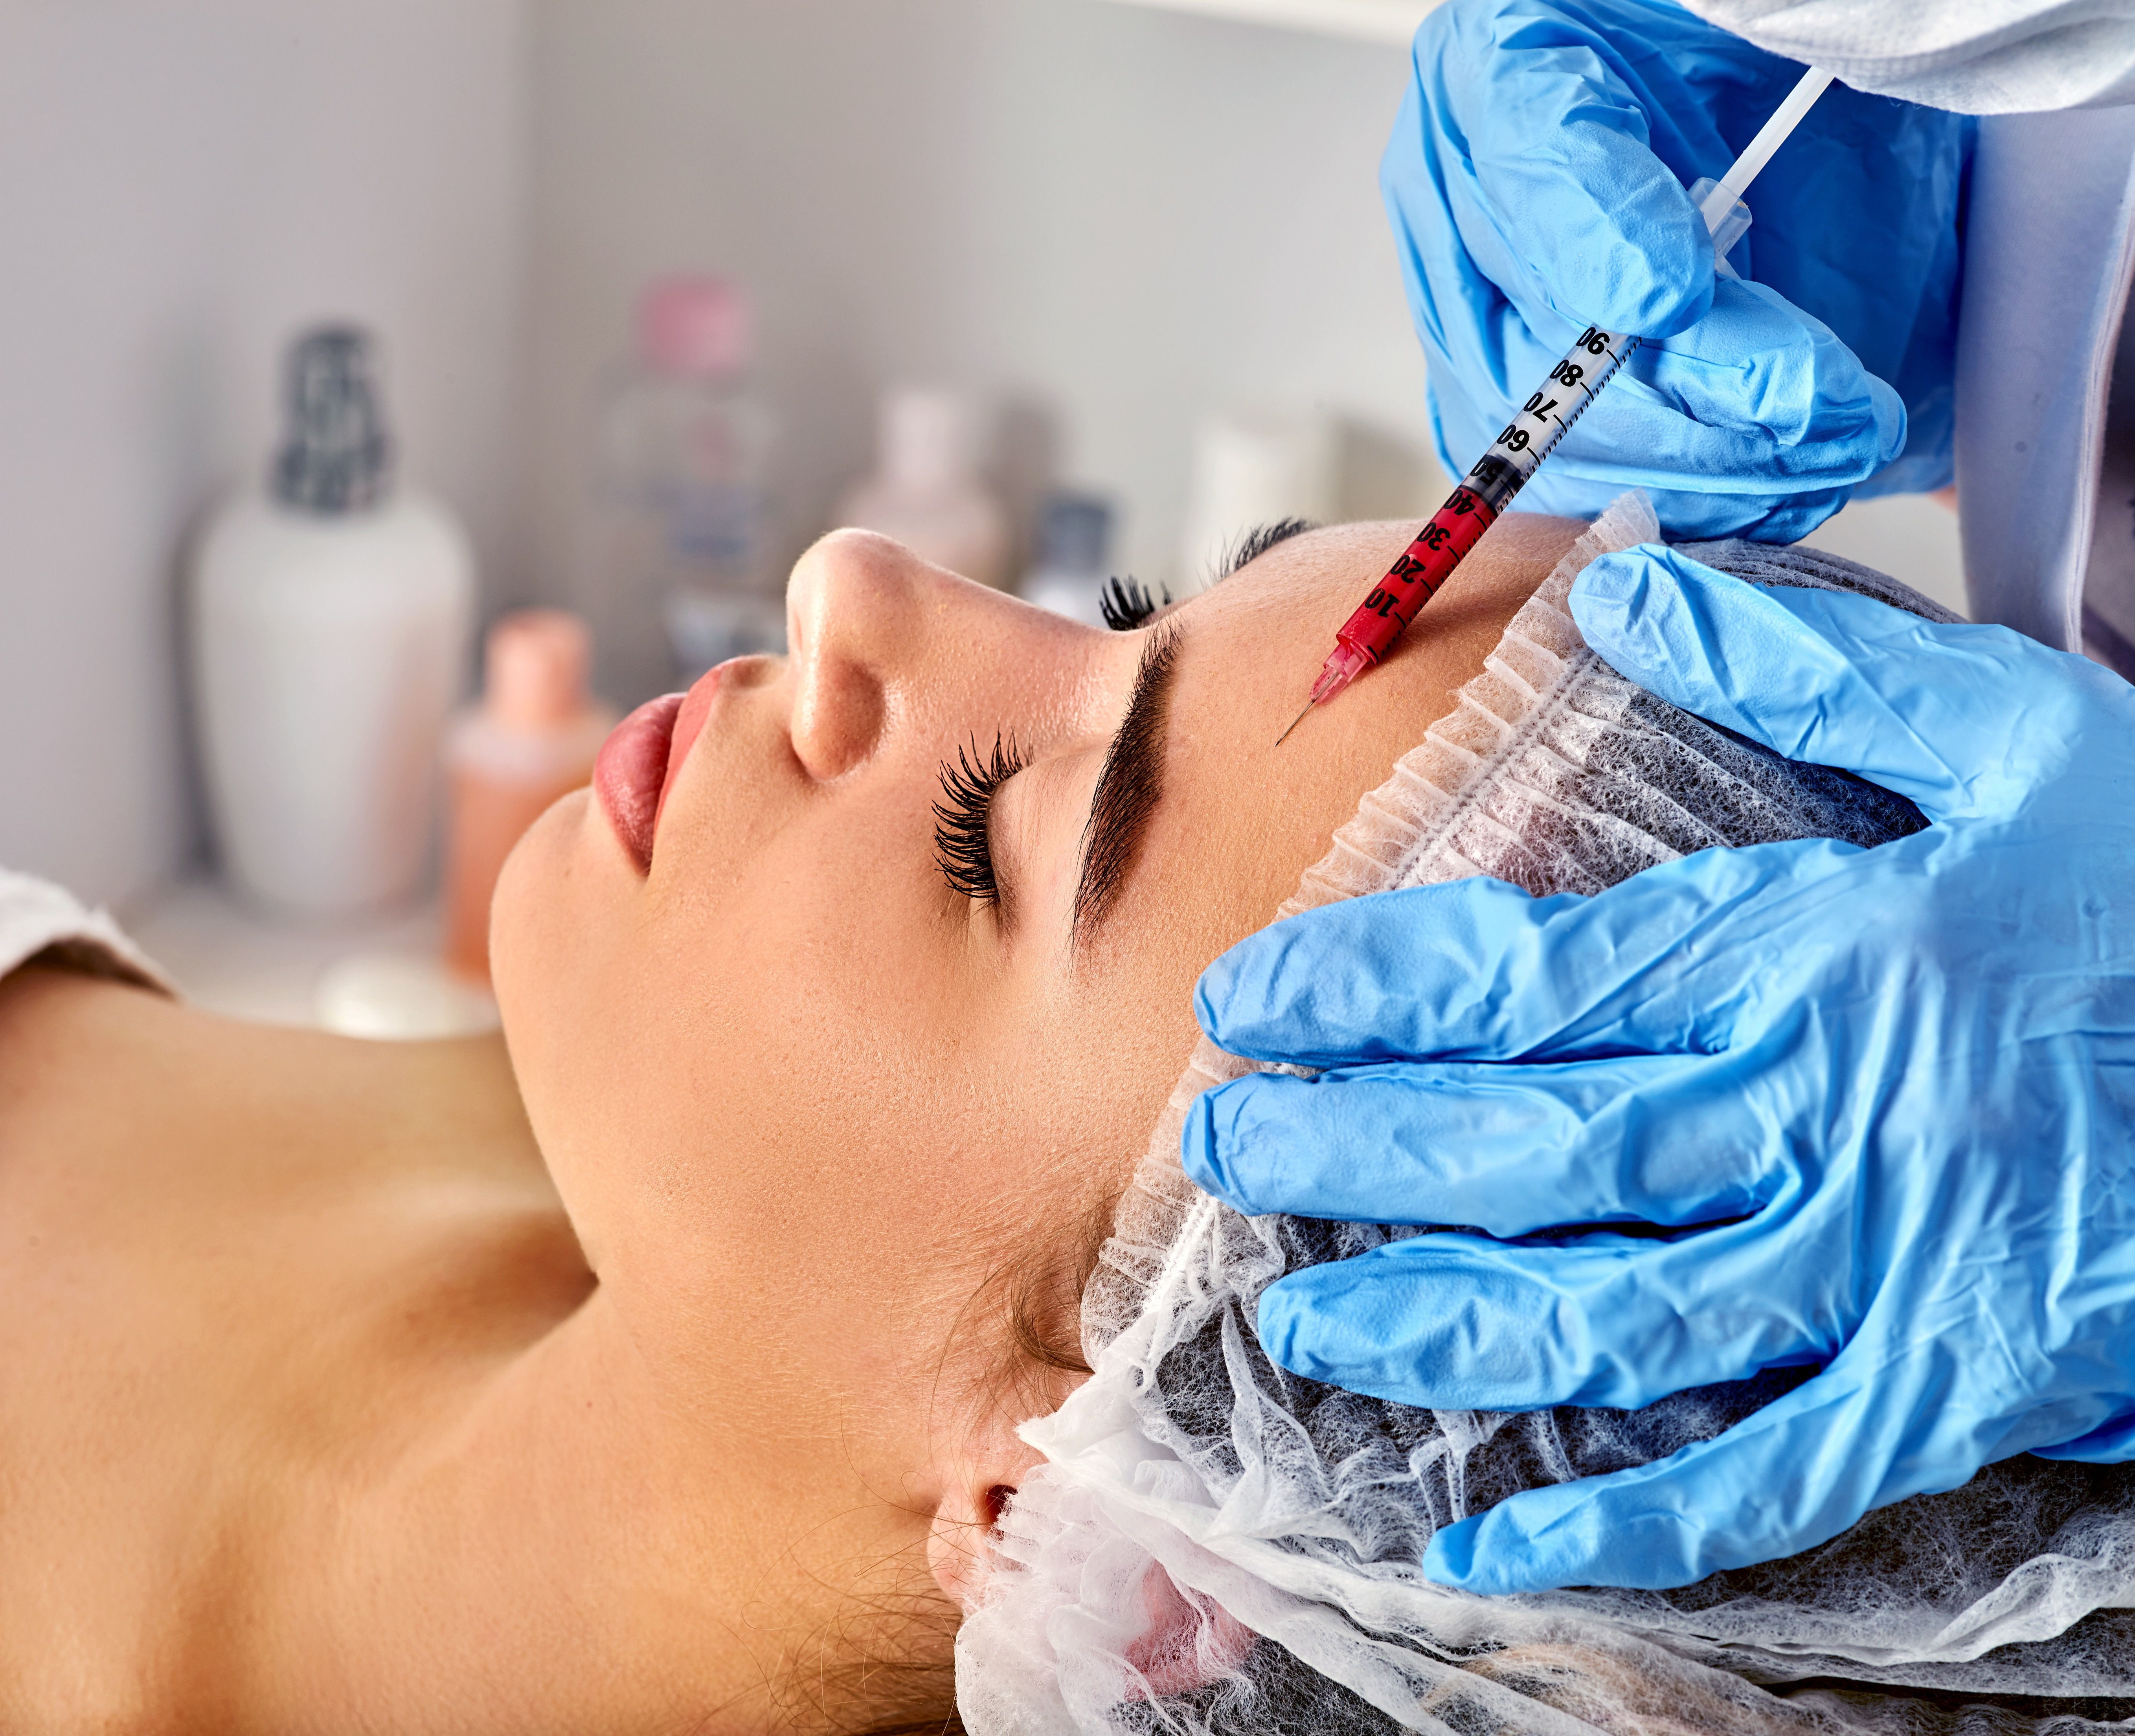 Popular injectables we offer include Dysport and Botox